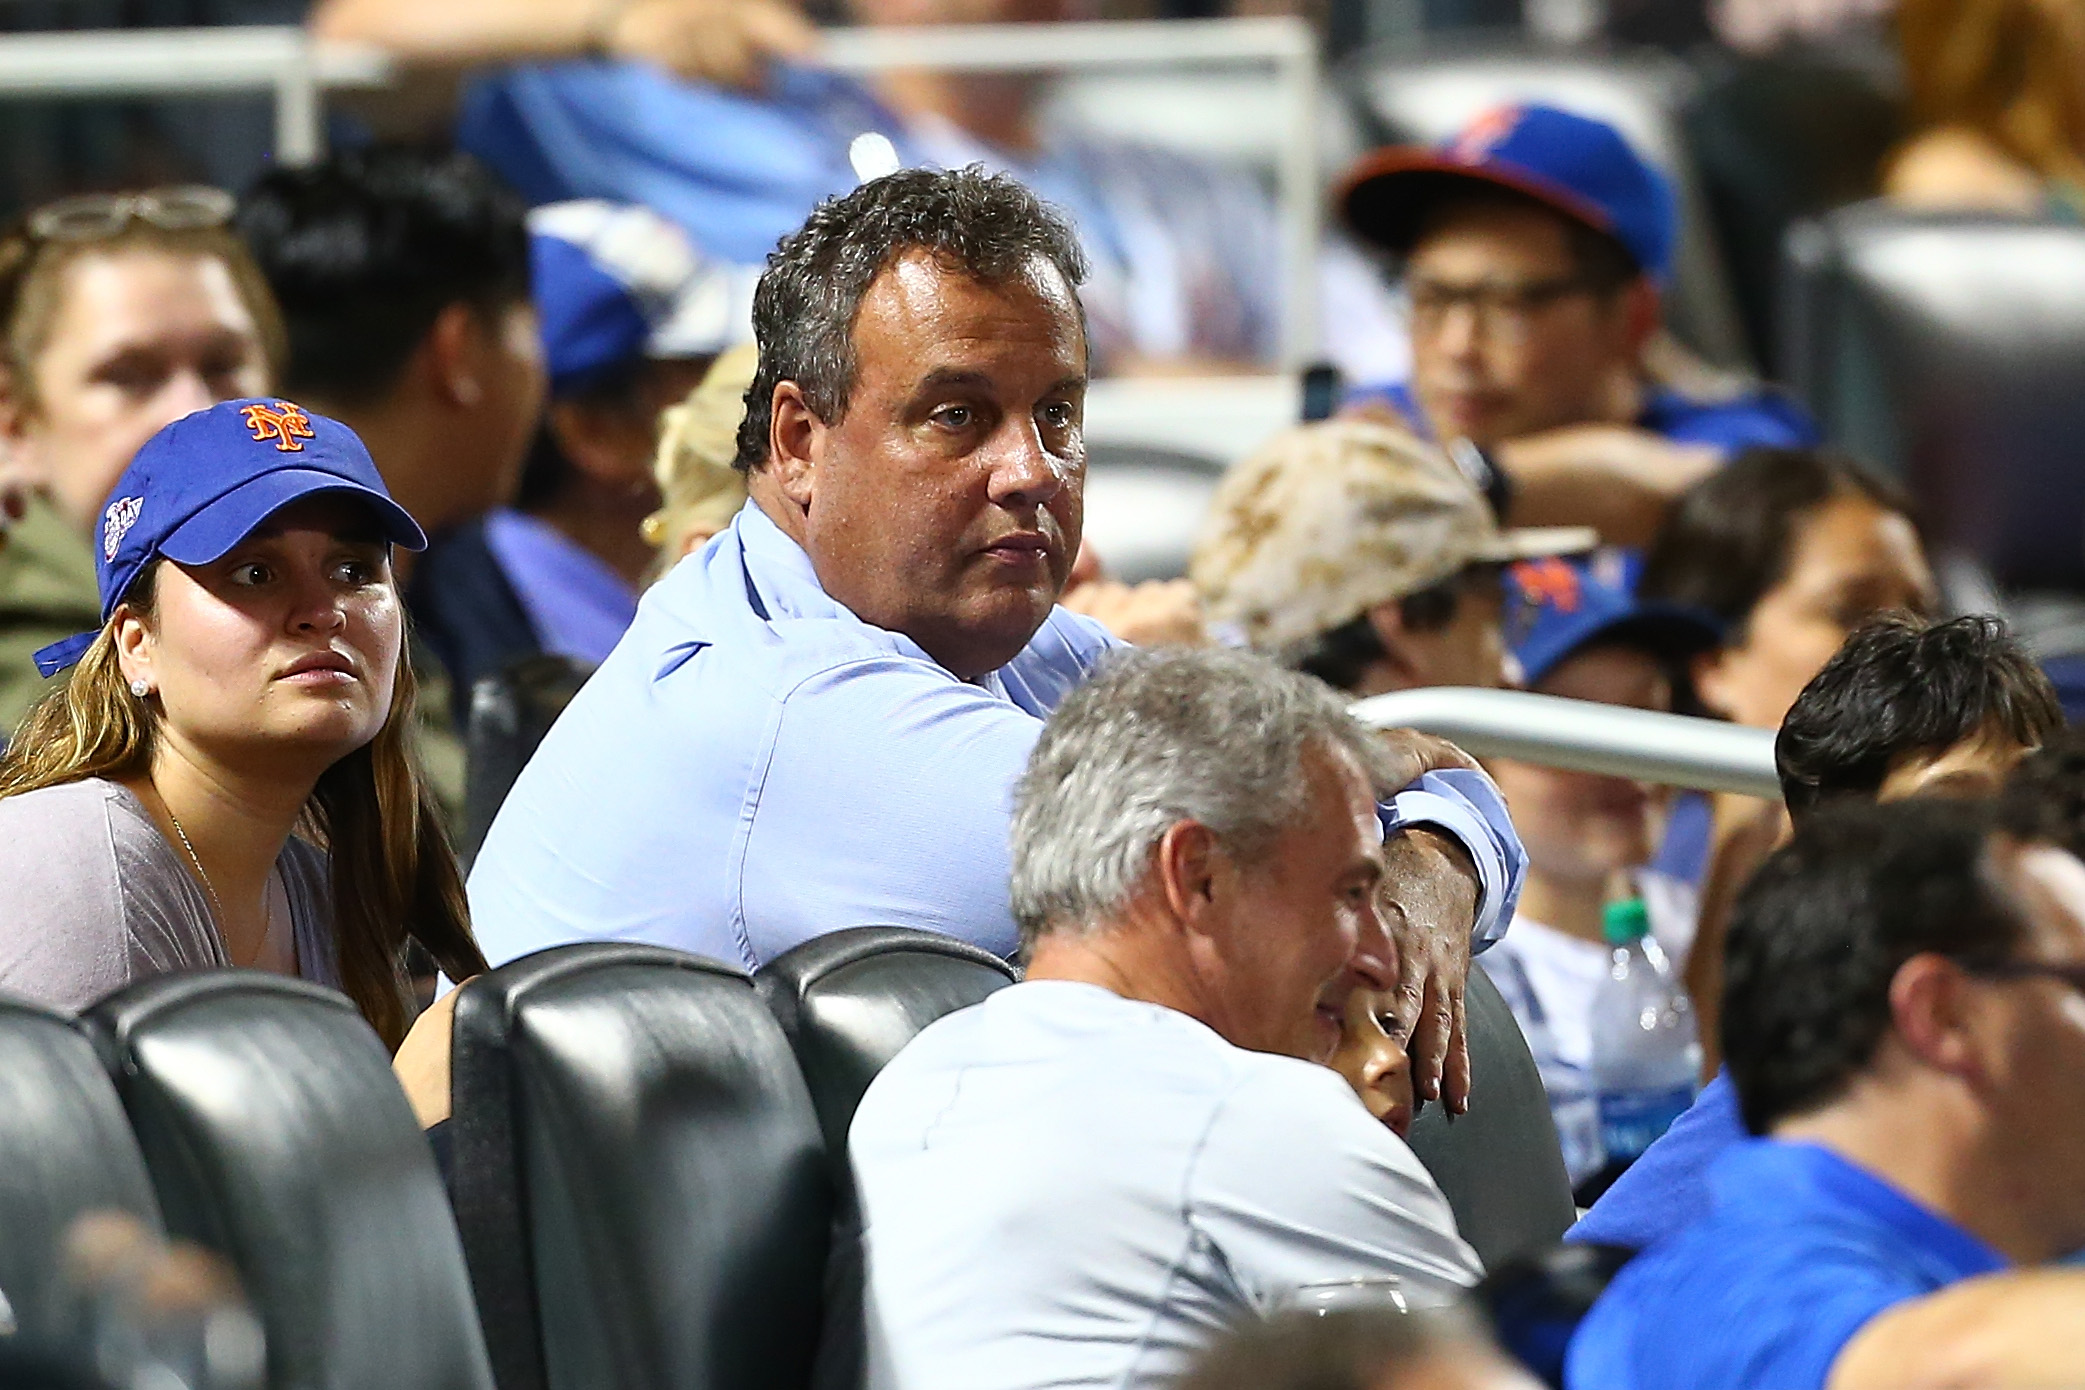 Governor of New Jersey Chris Christie attends the game between the New York Mets and the St. Louis Cardinals at Citi Field on July 18, 2017 in the Flushing neighborhood of the Queens borough of New York City.